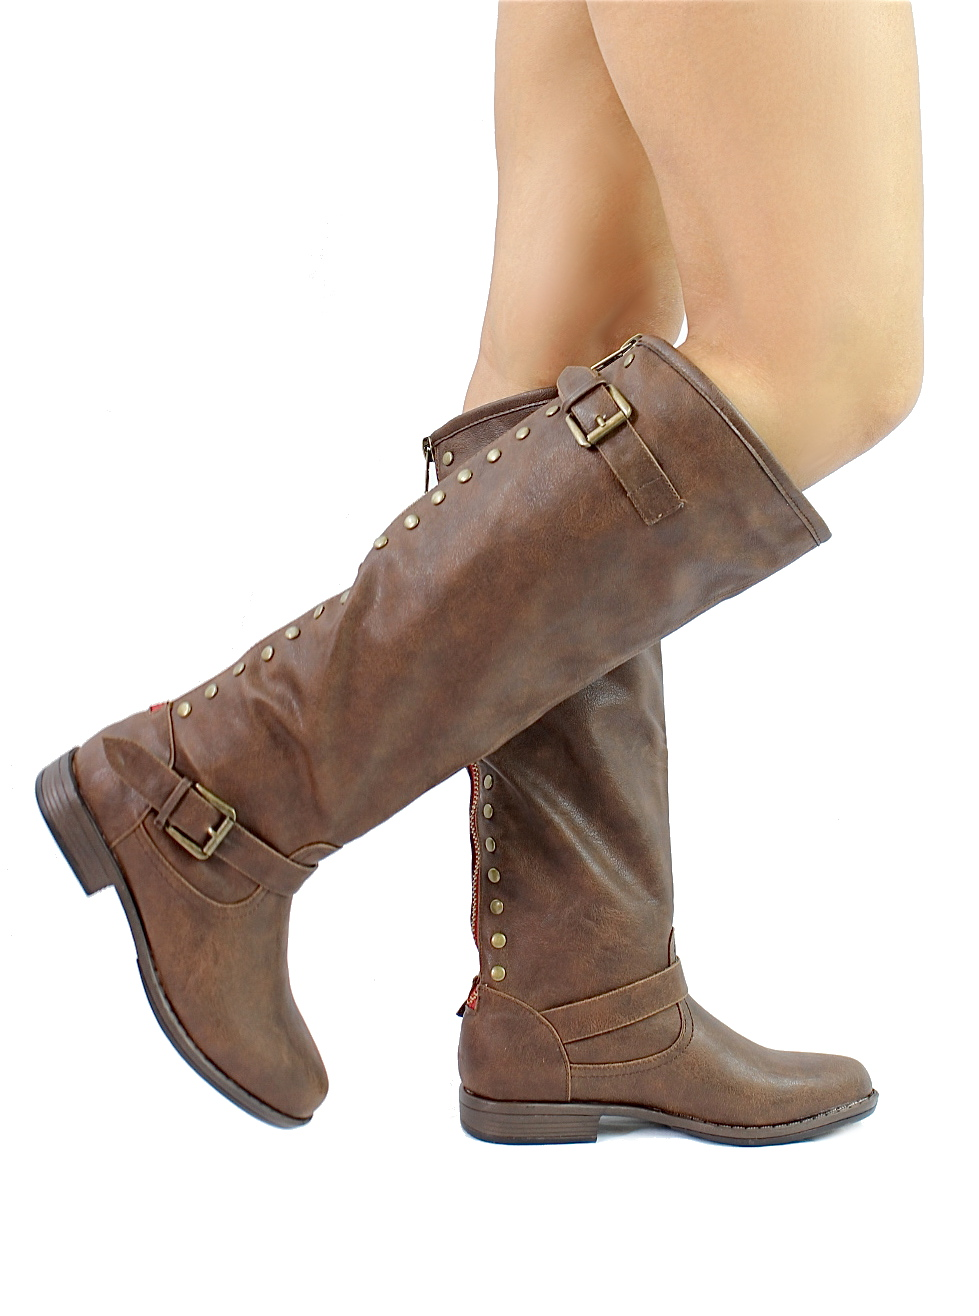 Bamboo Montage-83 Brown Studded Contrast Zipper Knee Heigh Riding Boots-927